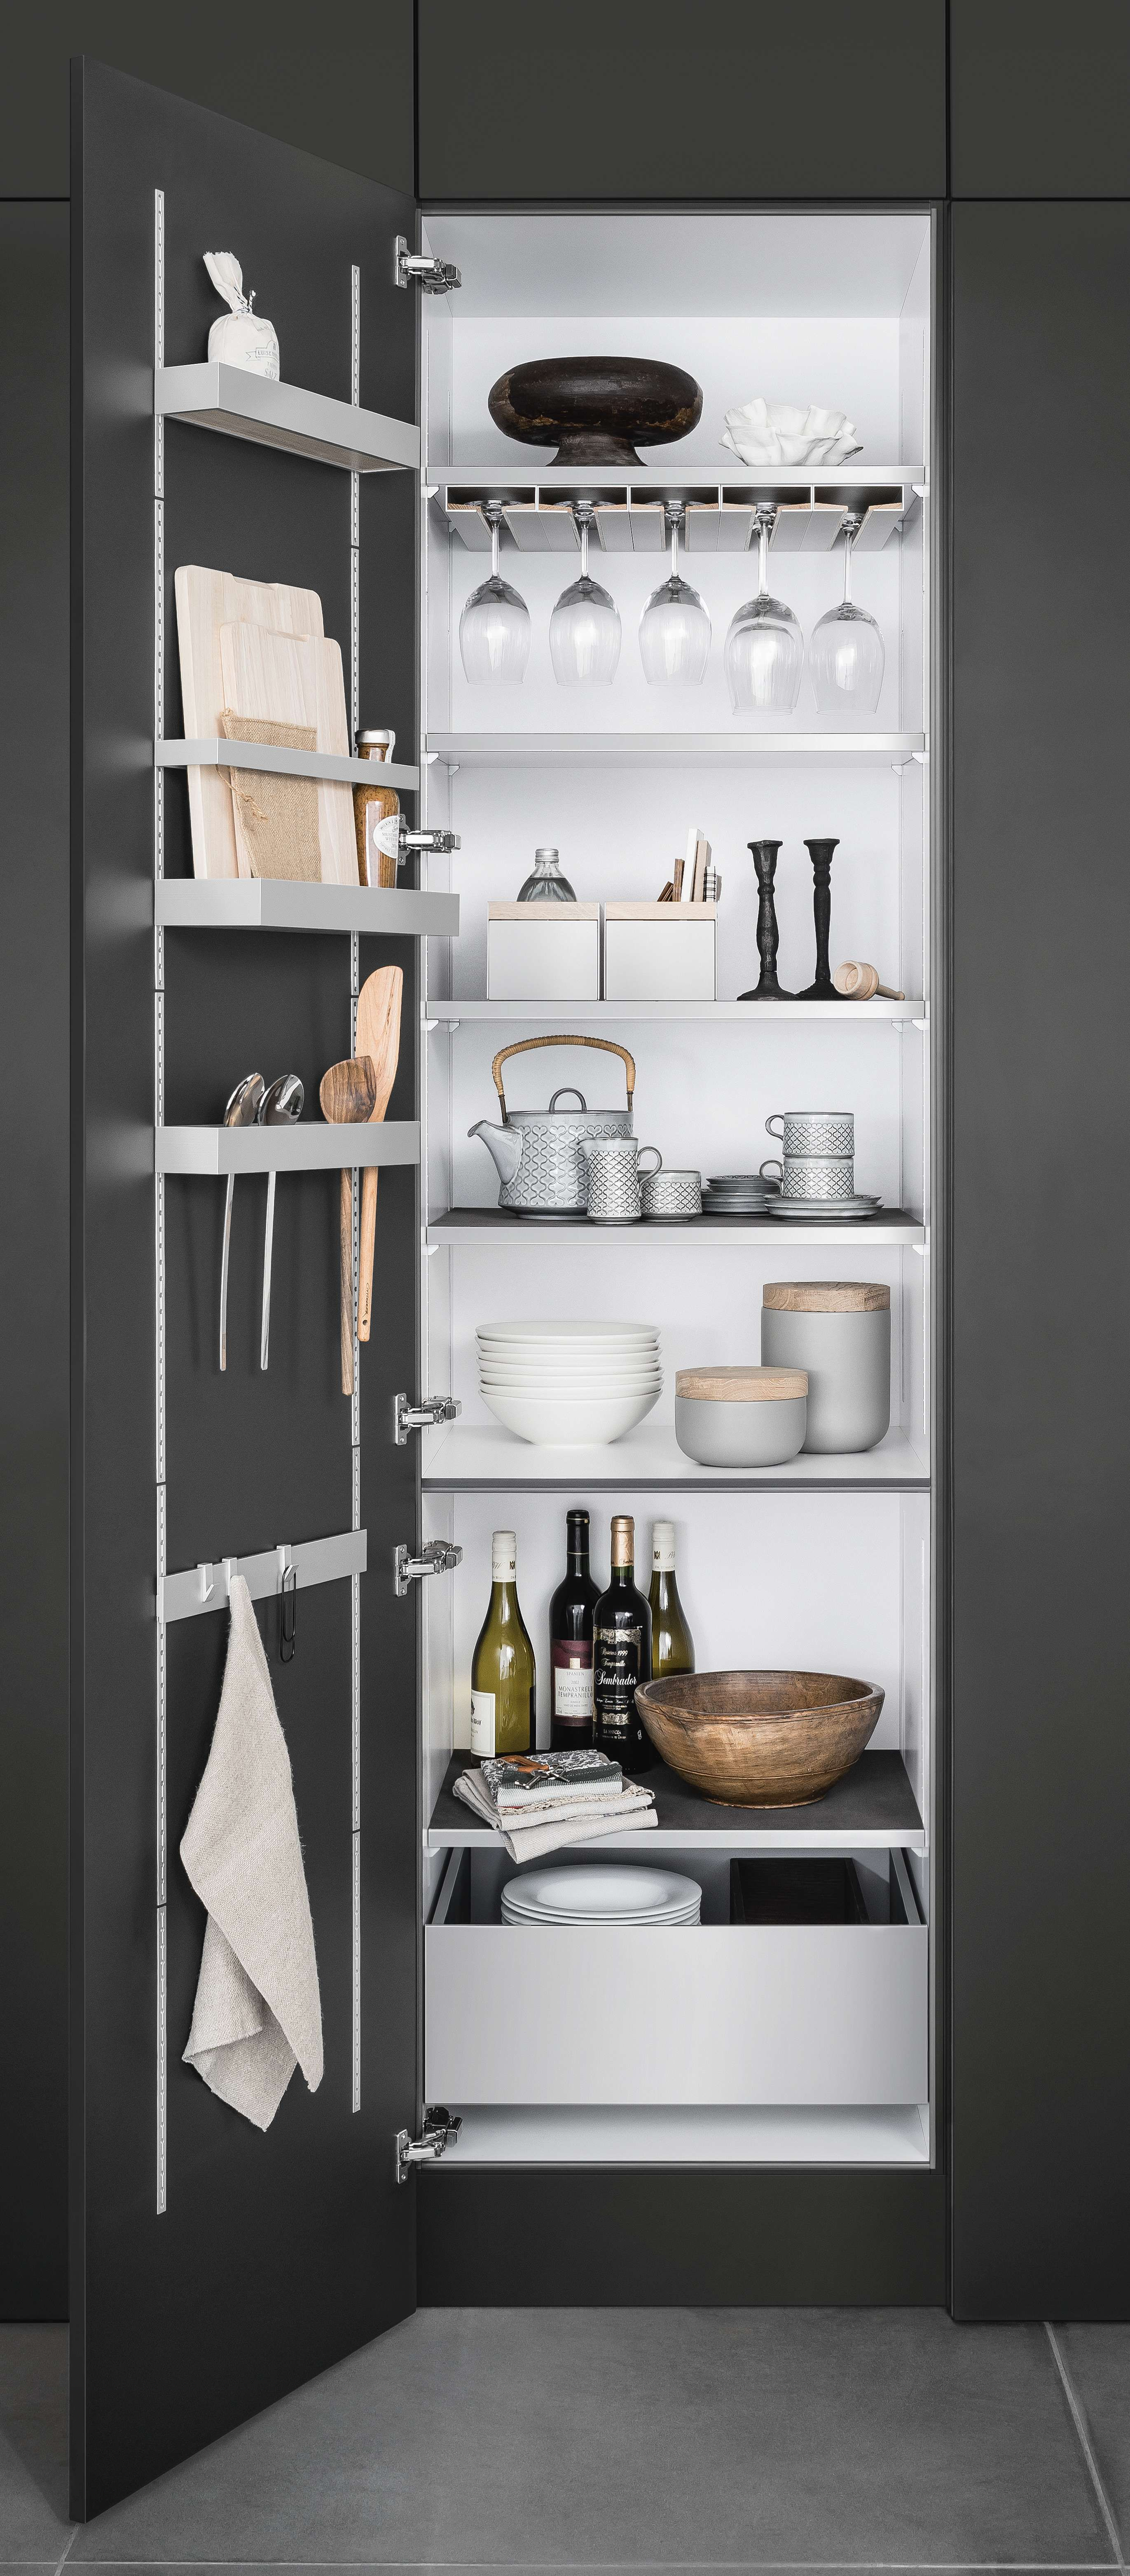 1 rk küchendesign siematic inside for tall wall and base cabinets nowhere is space